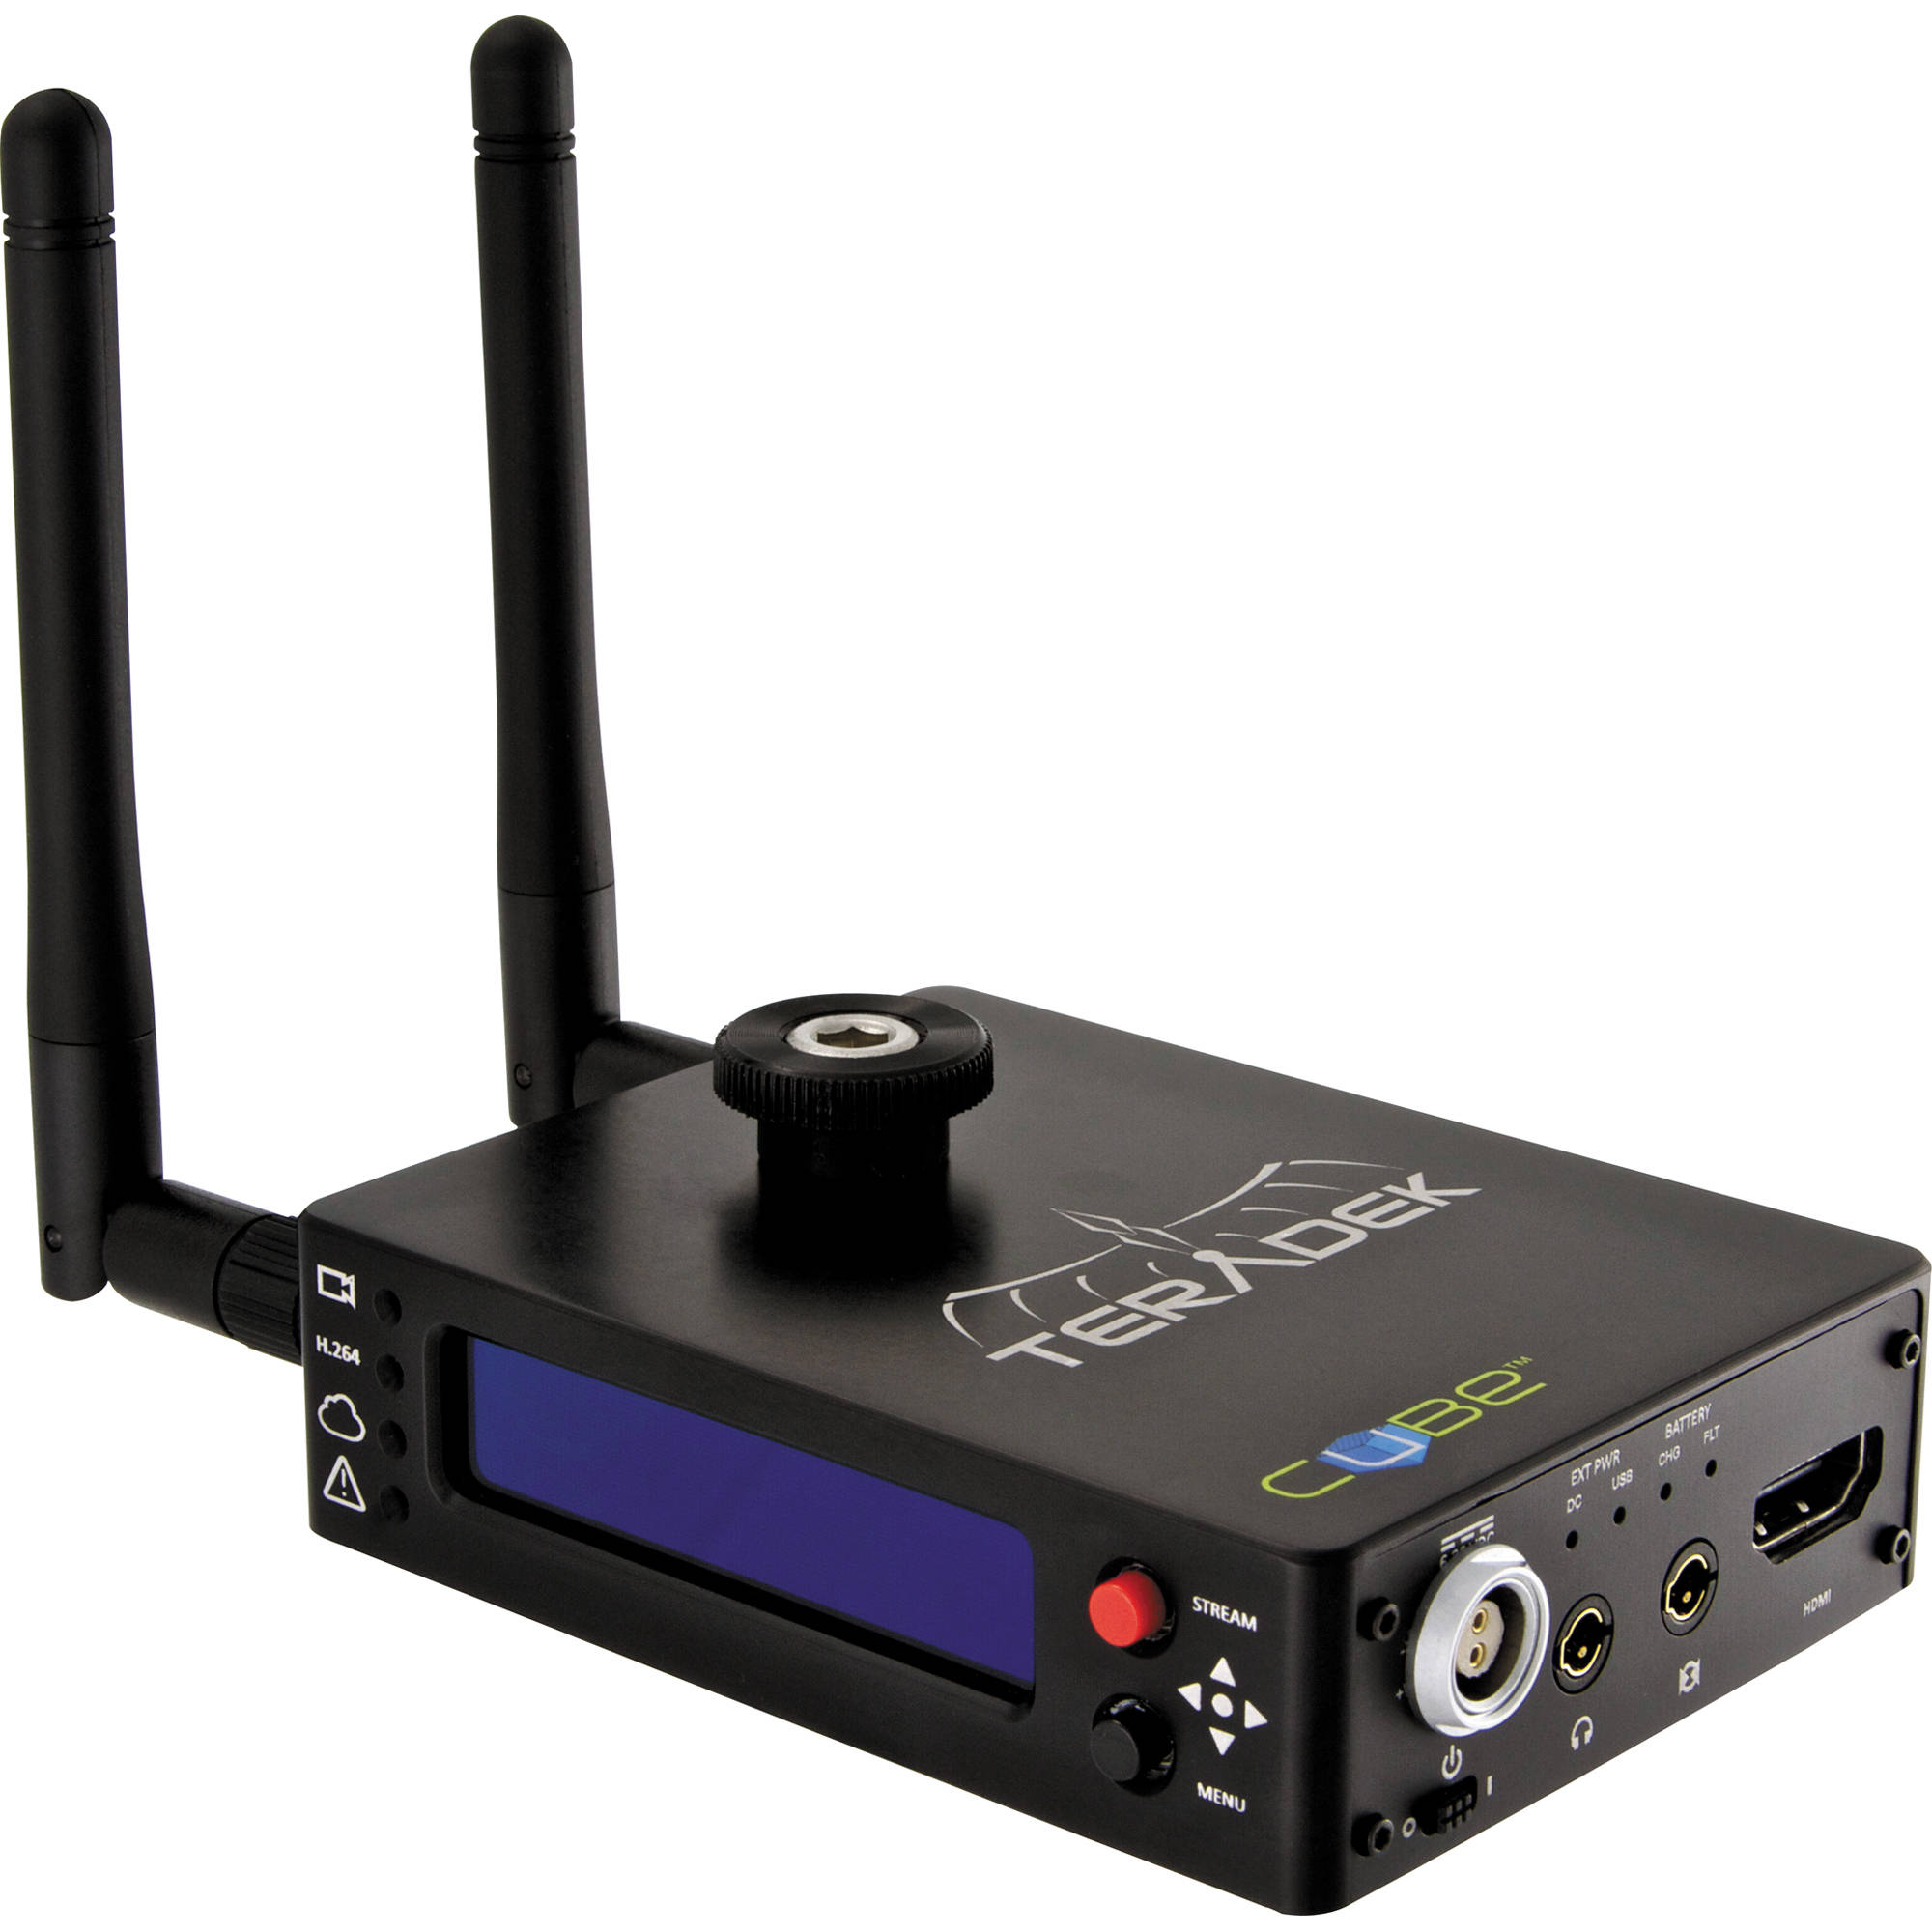 teradek cube 255 hdmi encoder with wifi 10 0255 b h photo video. Black Bedroom Furniture Sets. Home Design Ideas